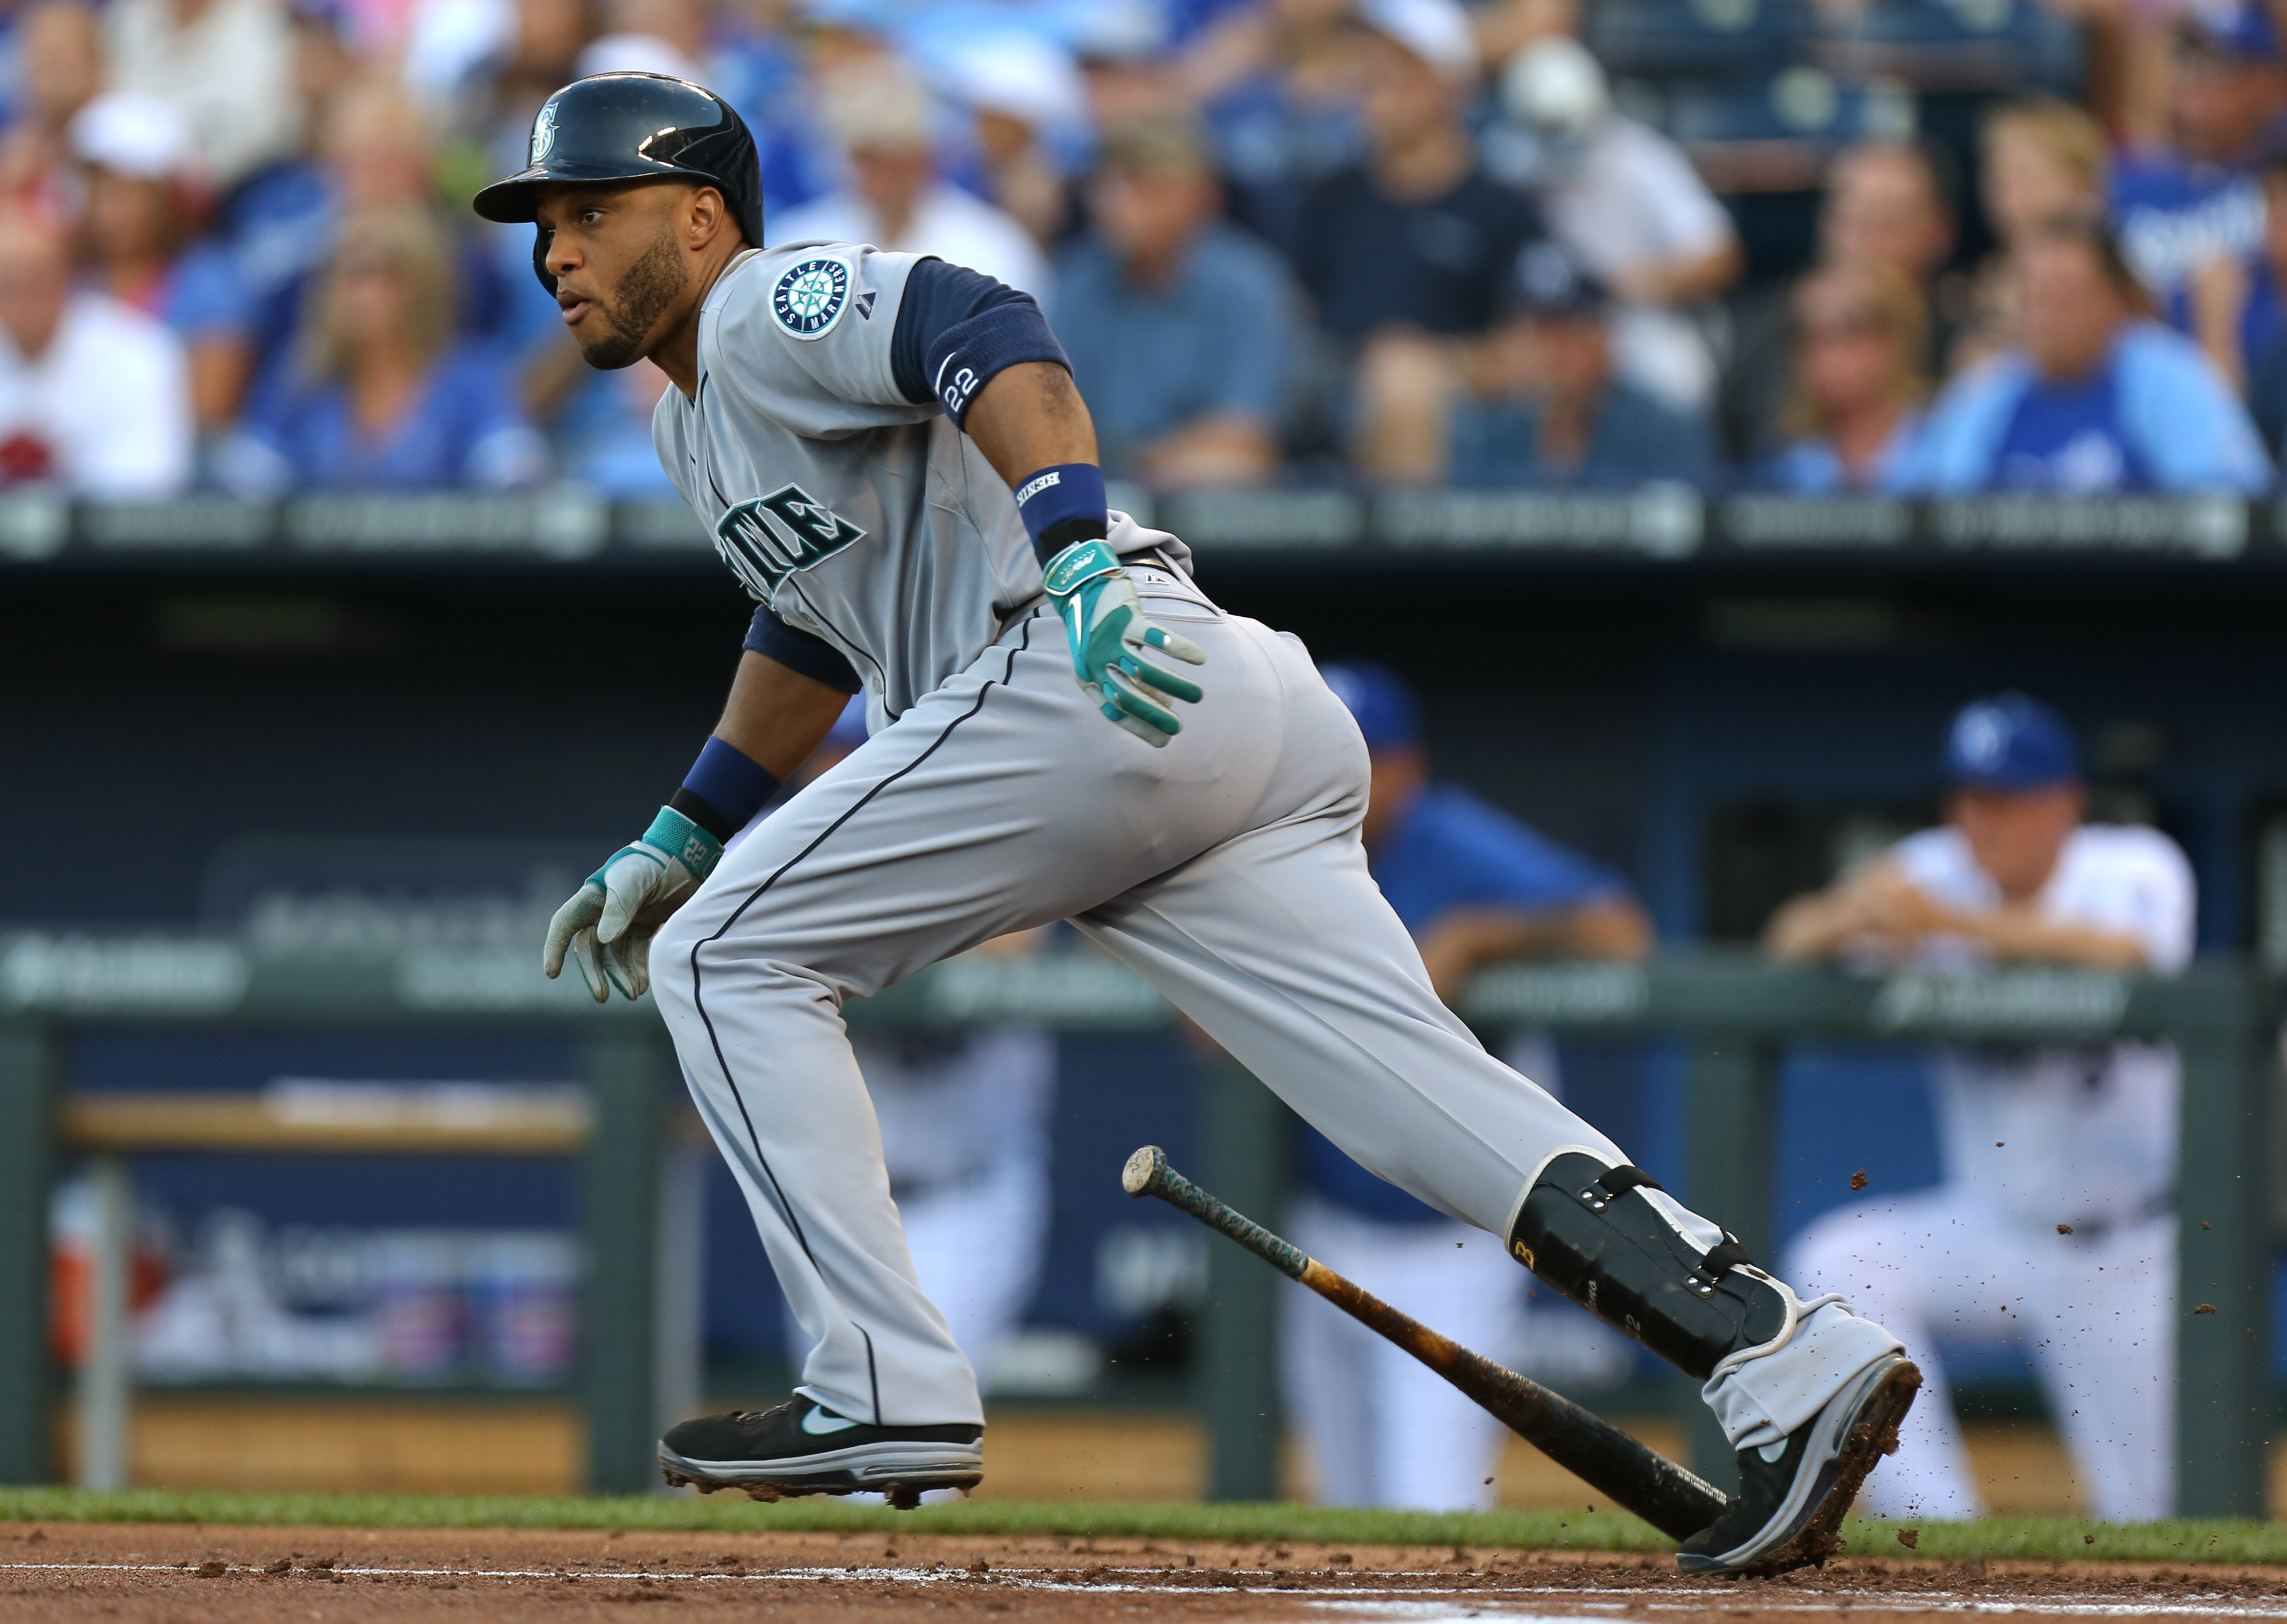 Despite hitting .337/.397/.448 in his first season in the Emerald City, Robinson Cano is off to a lukewarm start that could have major implications long-term